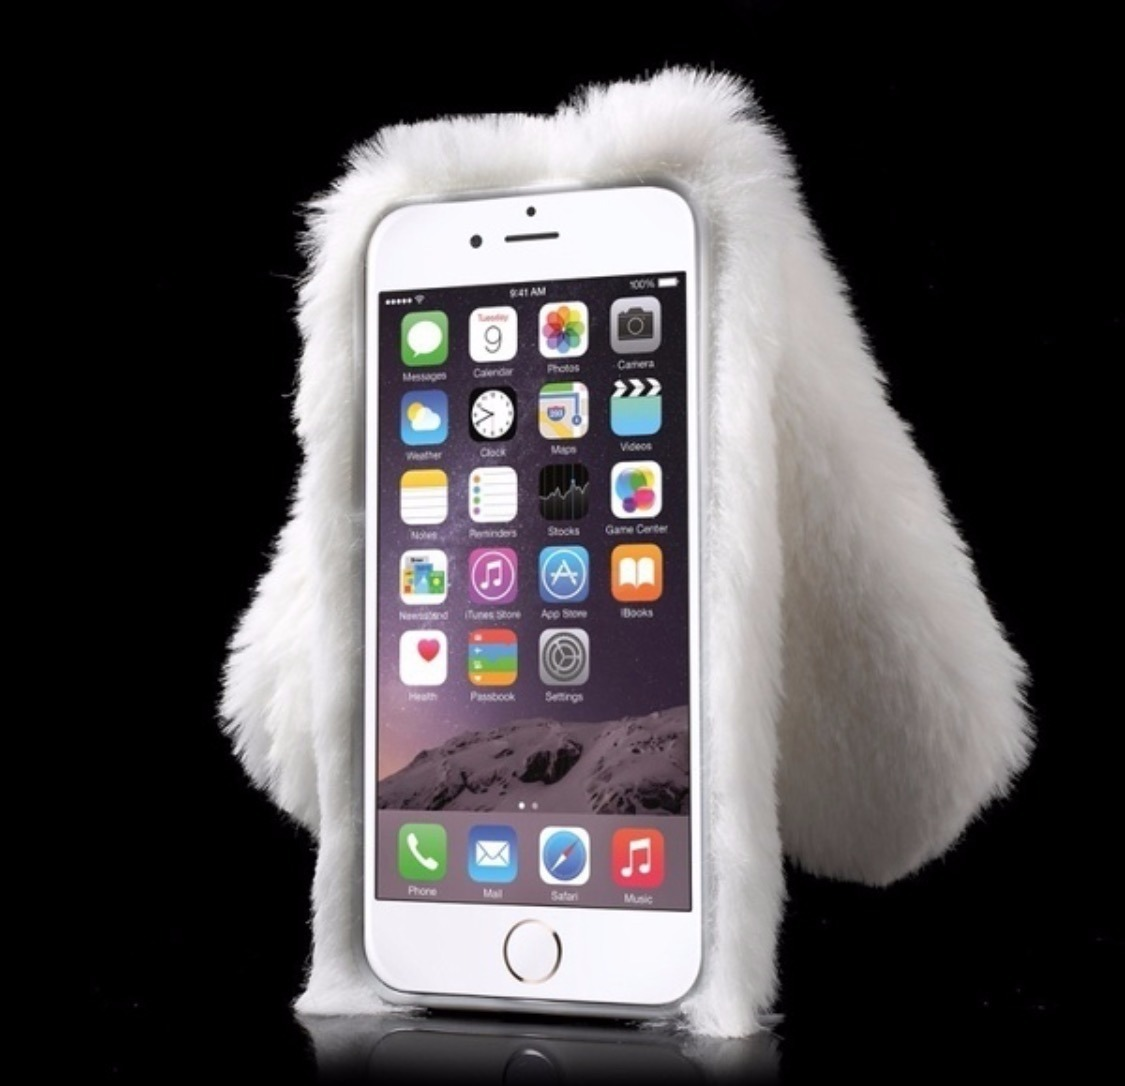 6b2cf4ab59a Case Funda Conejo De Peluche iPhone 6 Plus - $ 400.00 en Mercado Libre